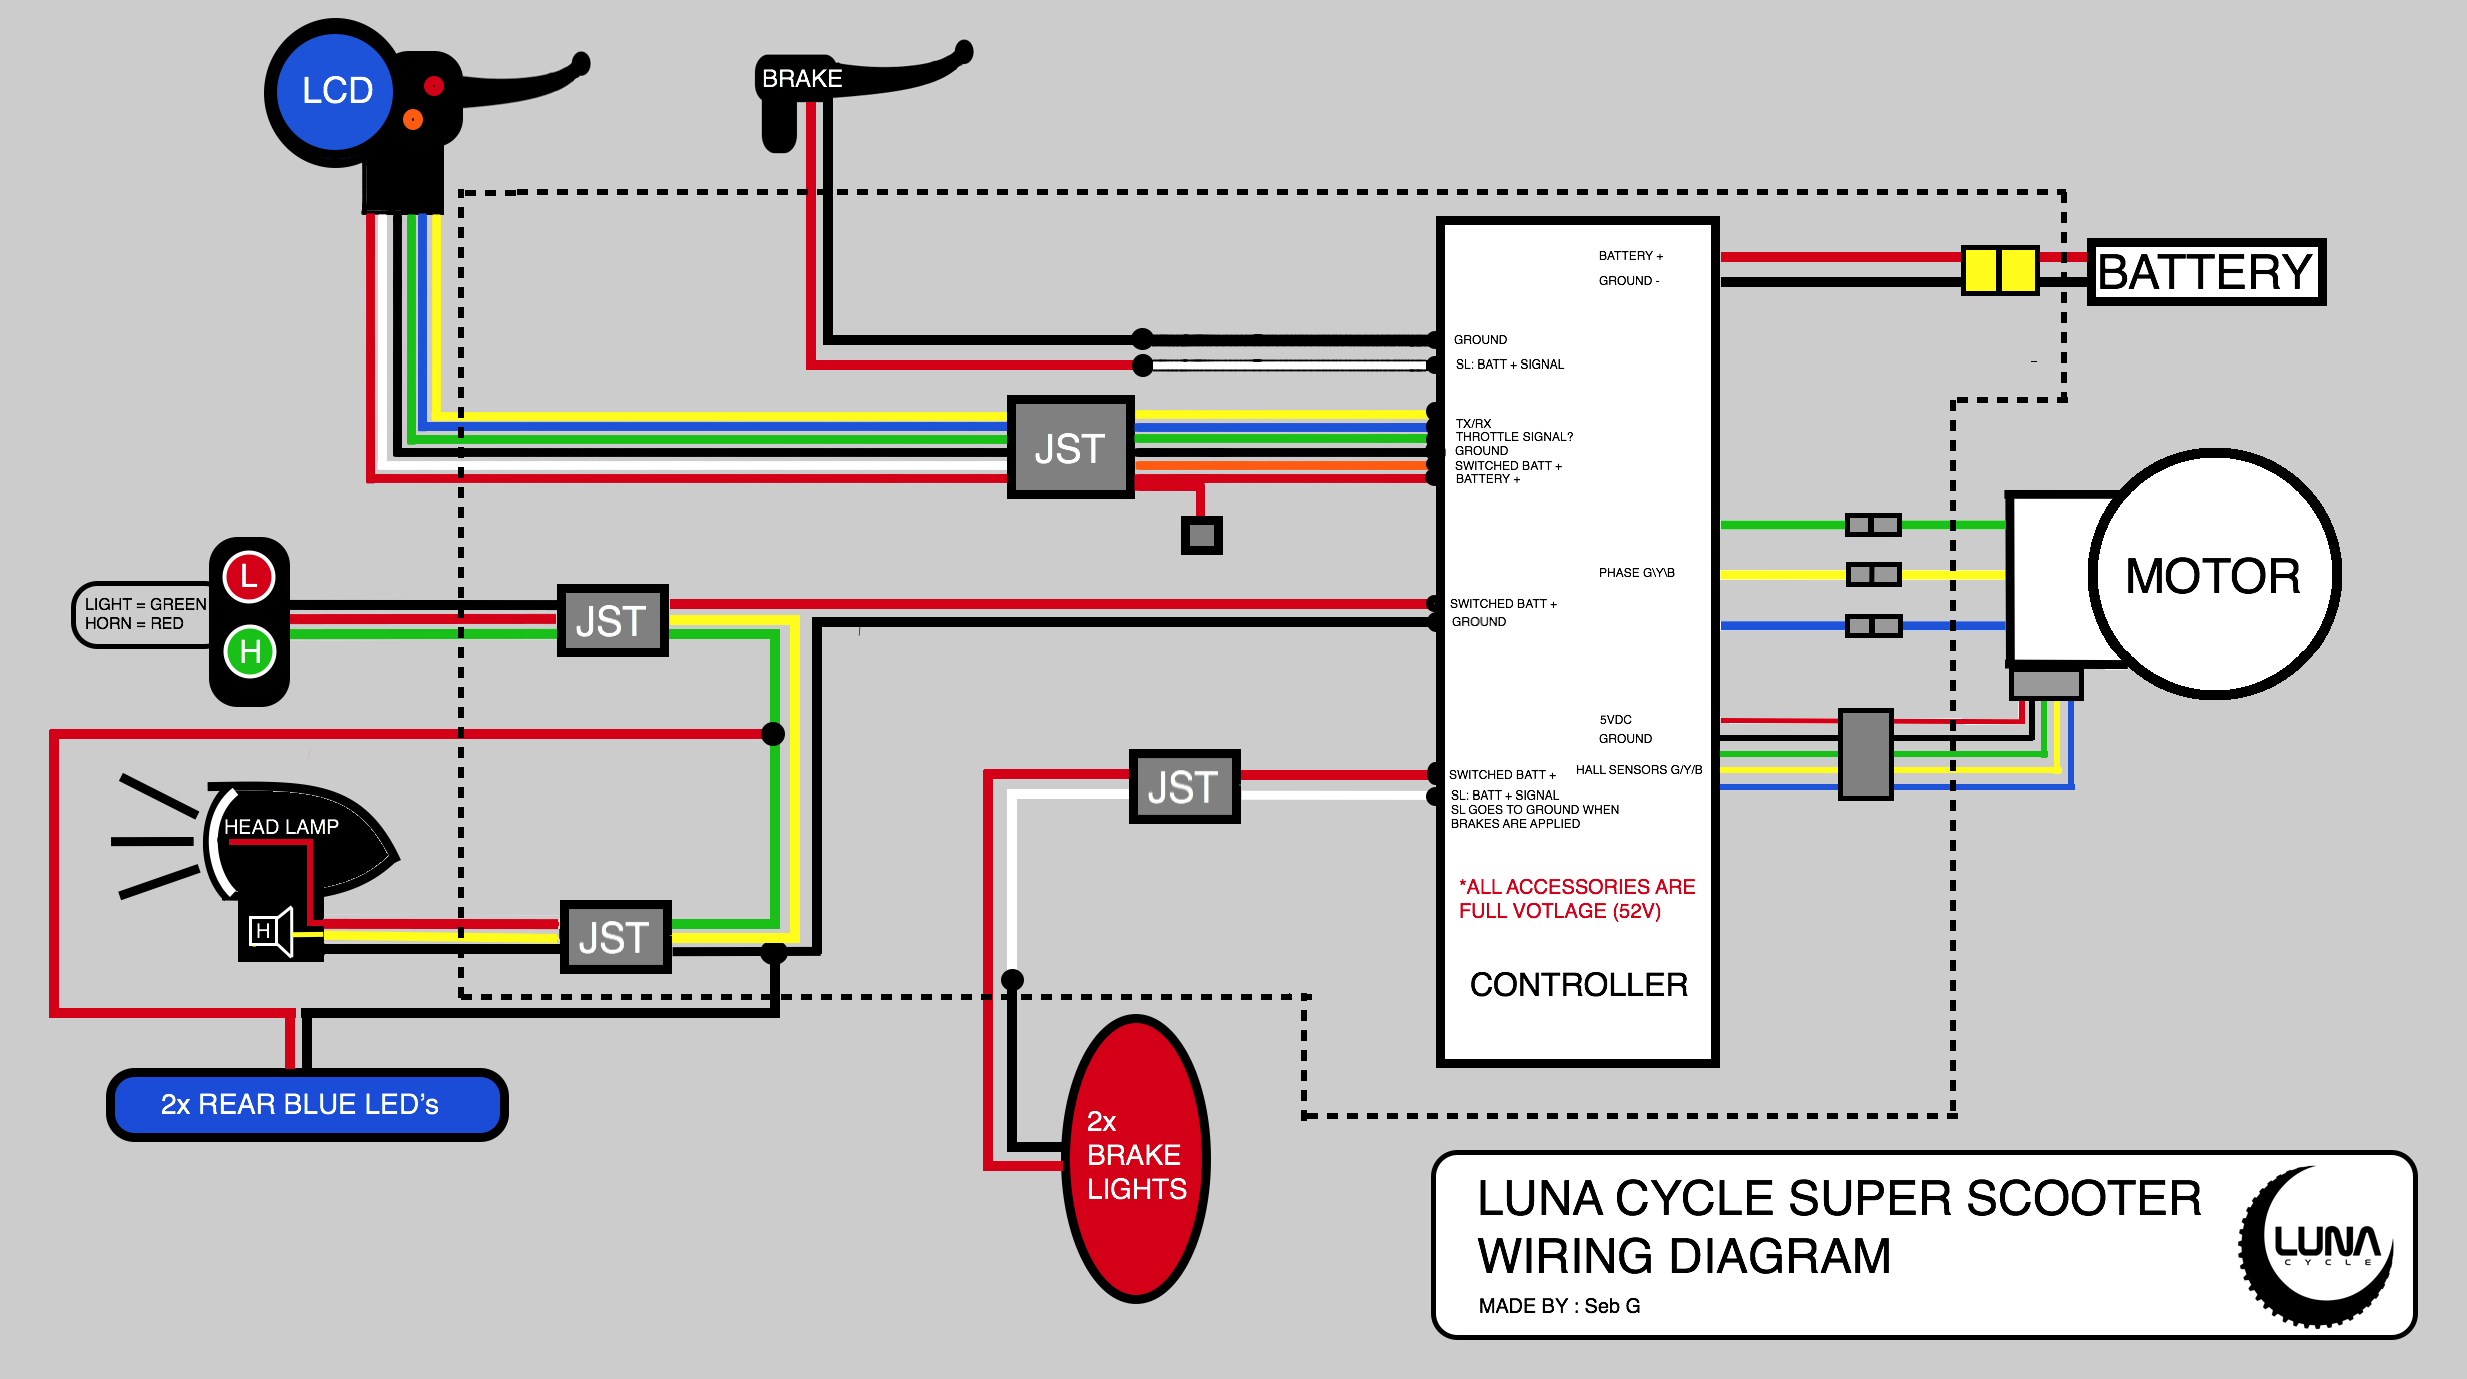 Super Scooter wiring diagram - Electricbike.com Ebike Forum